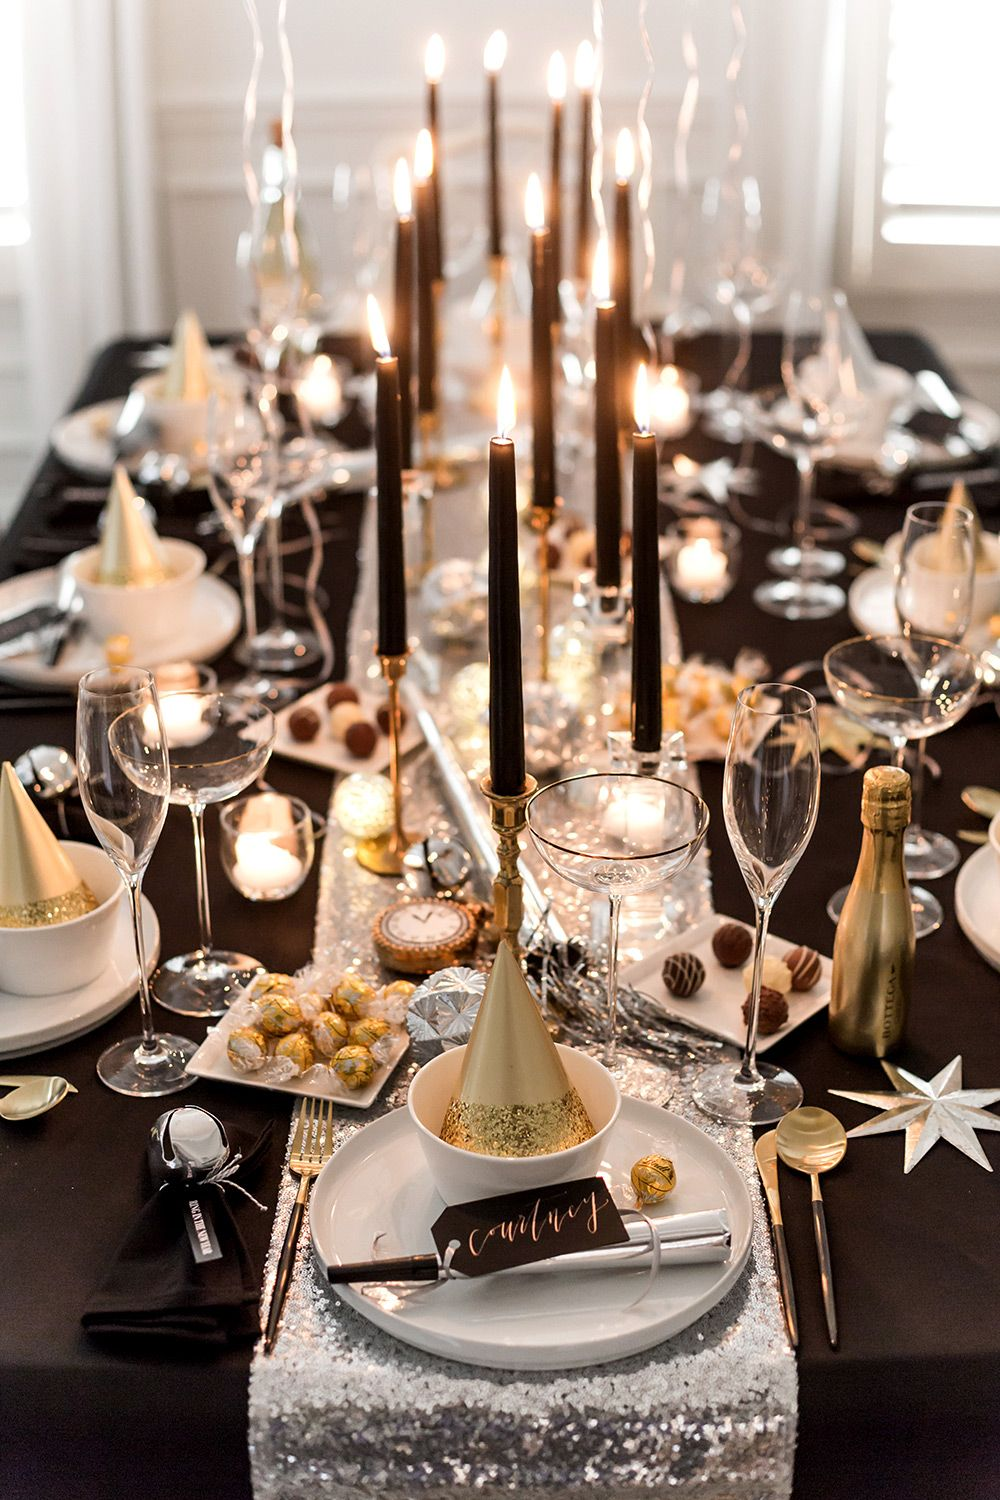 Ring In The New Year With Style By Hosting Your Own Glitz And Glam New Year S Eve Dinner New Years Eve Decorations New Years Eve Dinner New Years Dinner Party